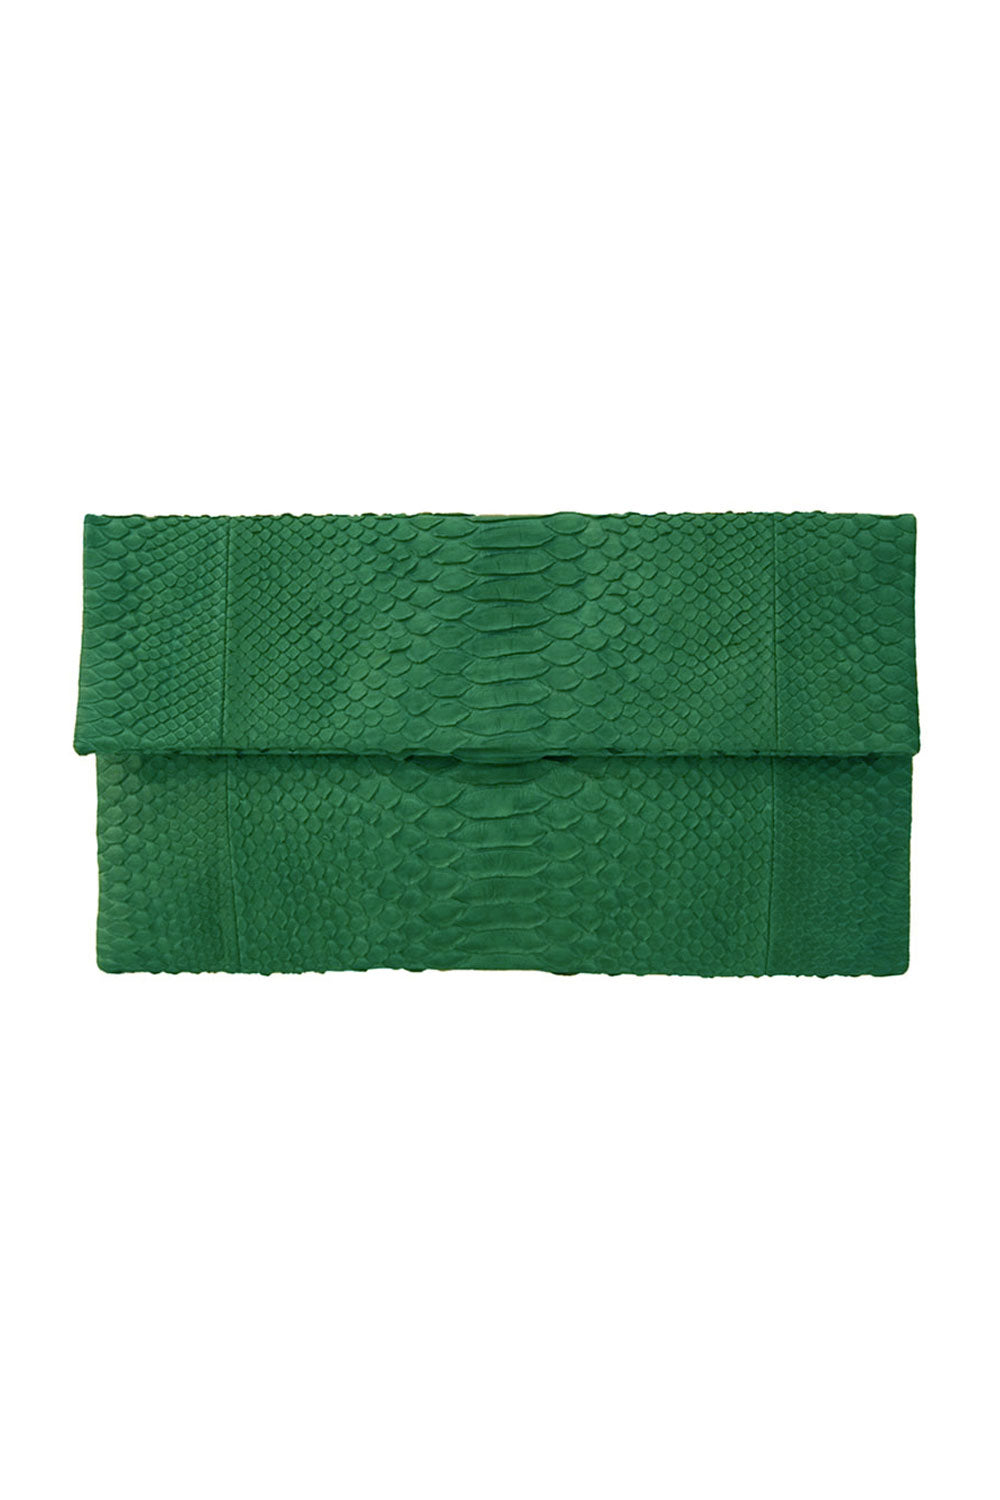 Primary New York Python Prime Clutch Kelly Green